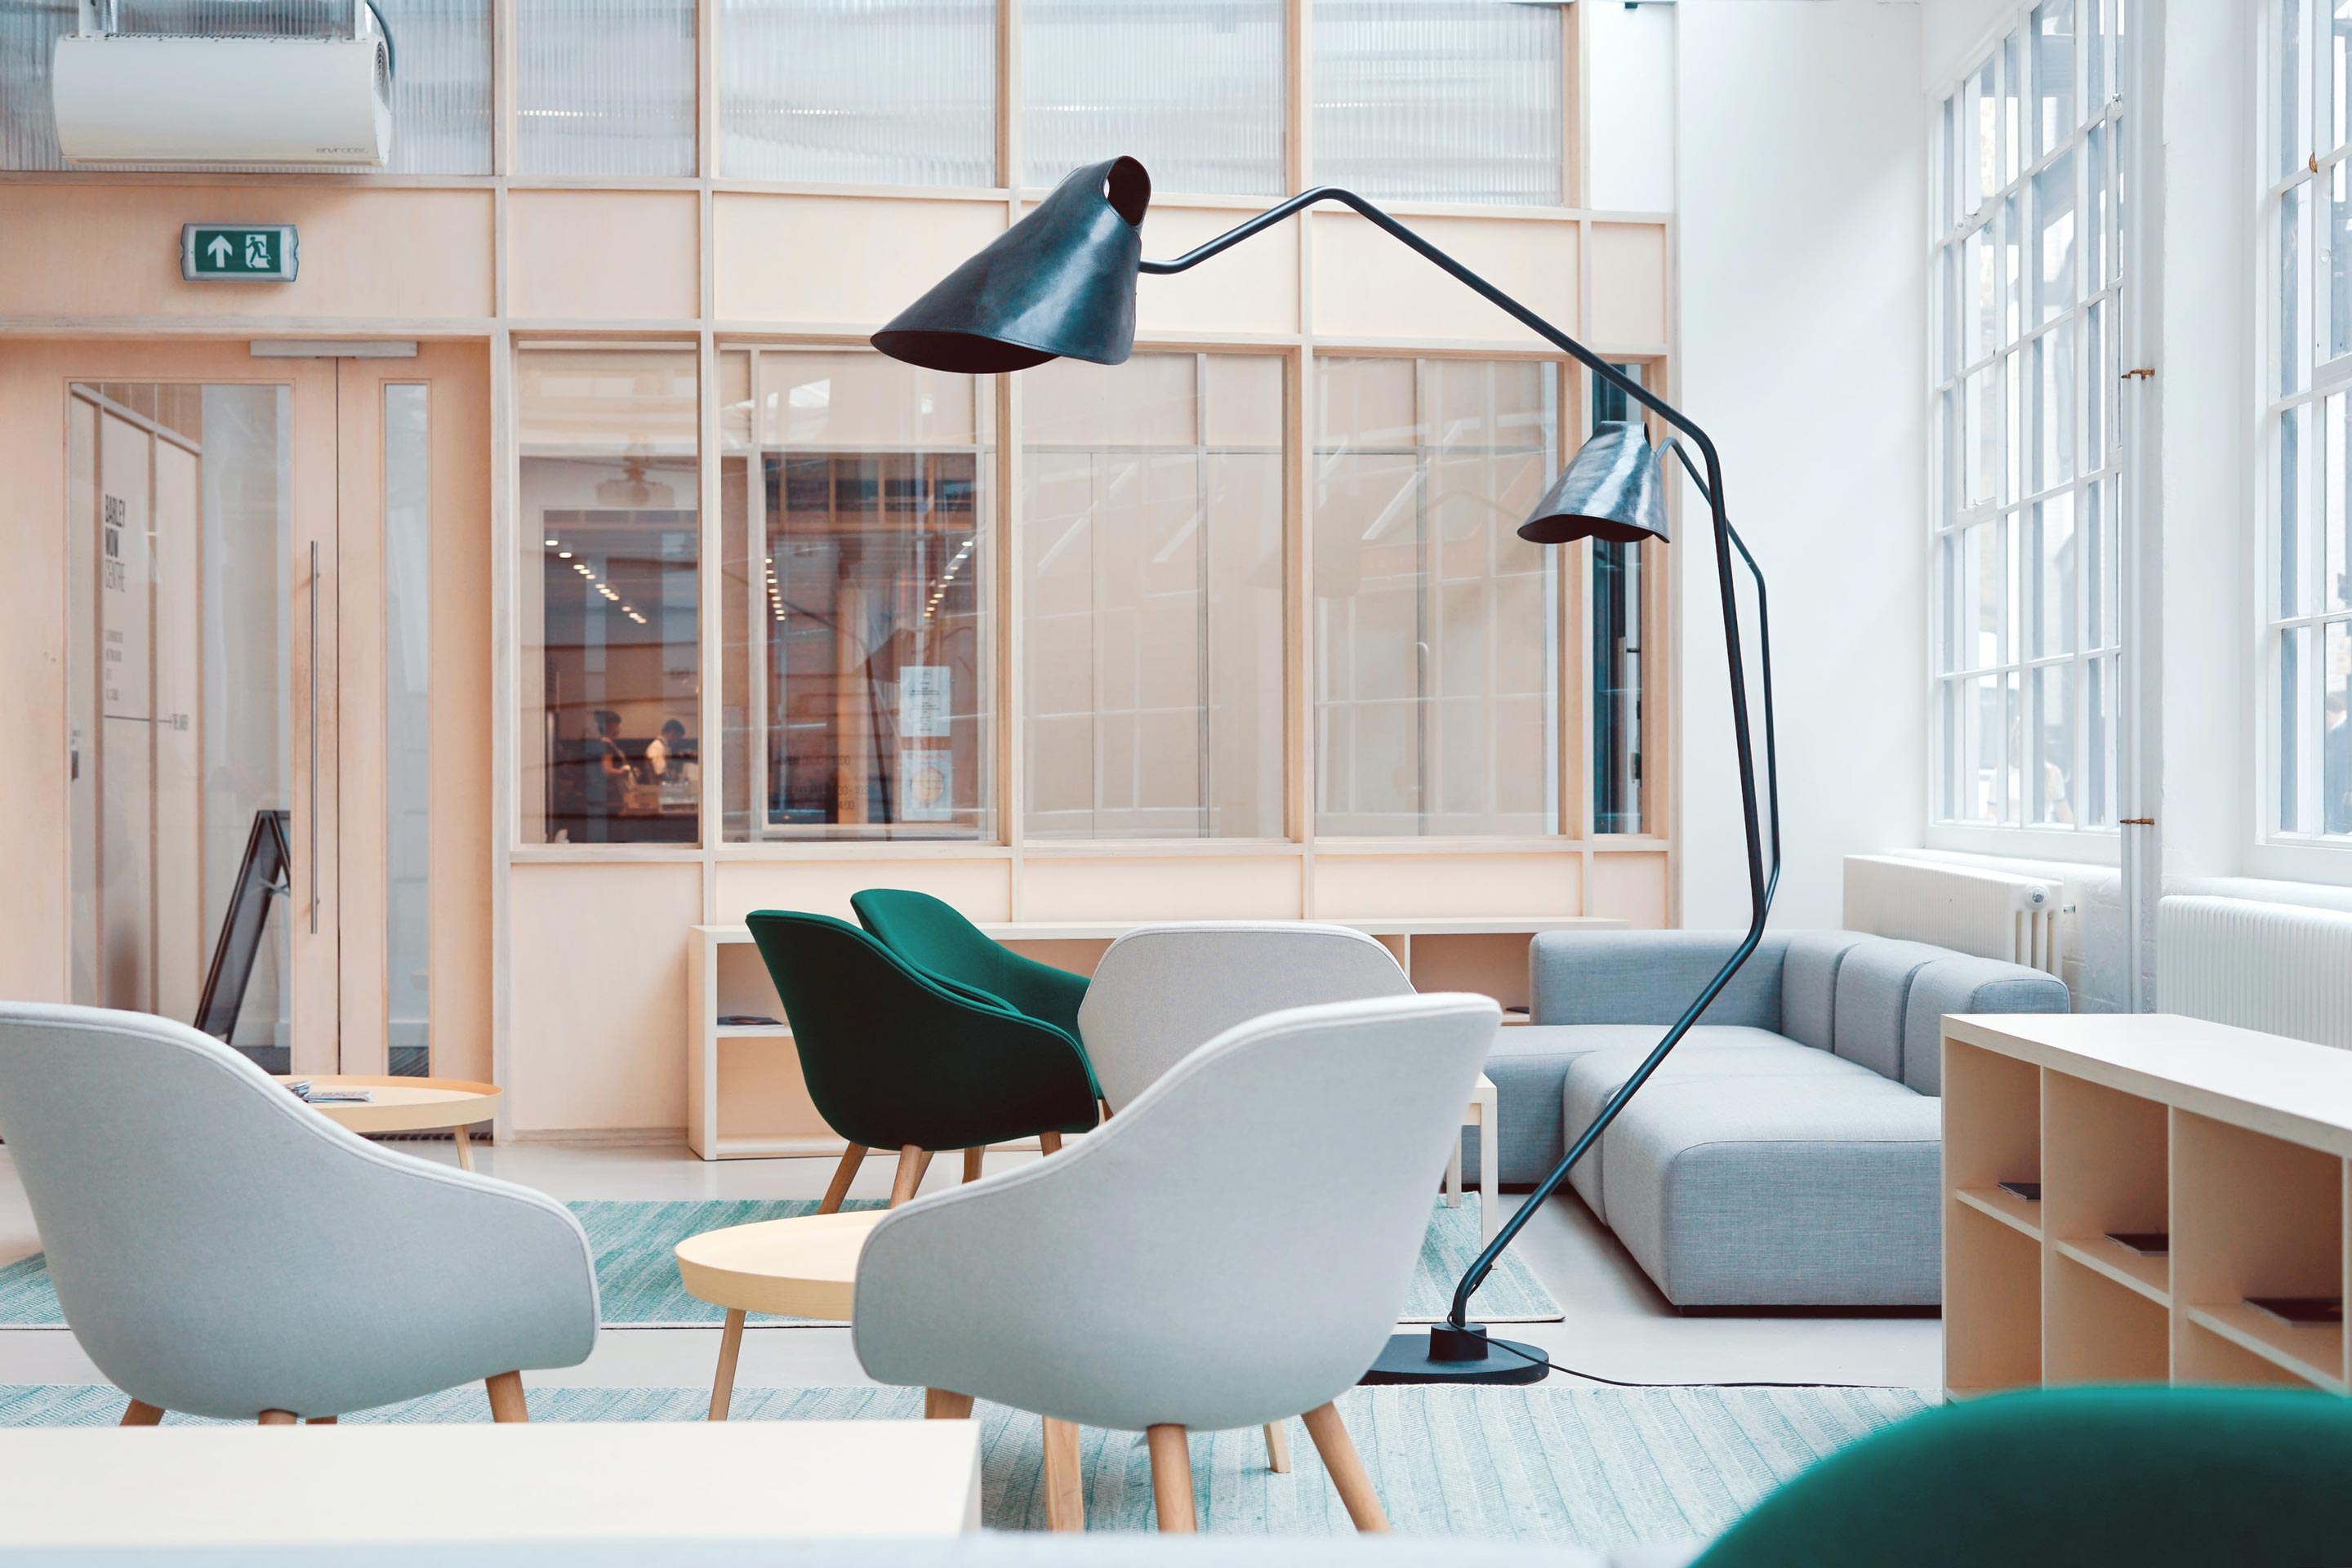 An office common area with a grey sofa, grey chairs, green chairs and a black lamp.